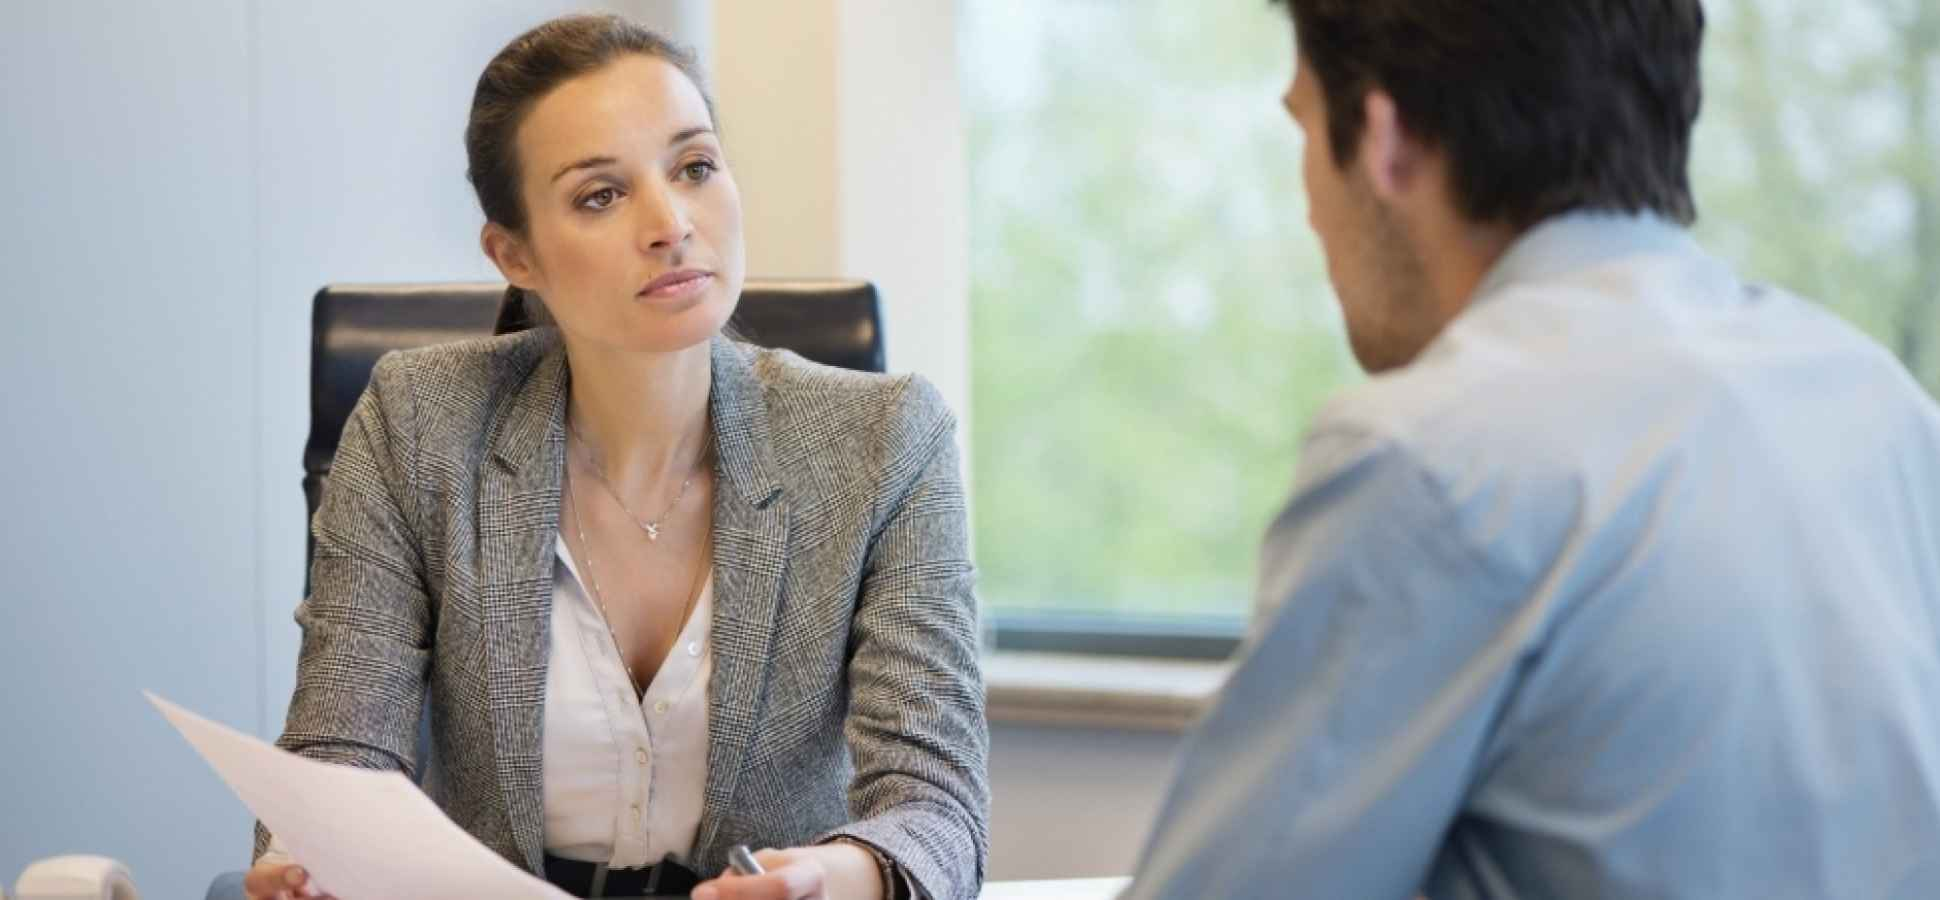 4 Critical Interview Questions to Ask Before You Hire Anyone